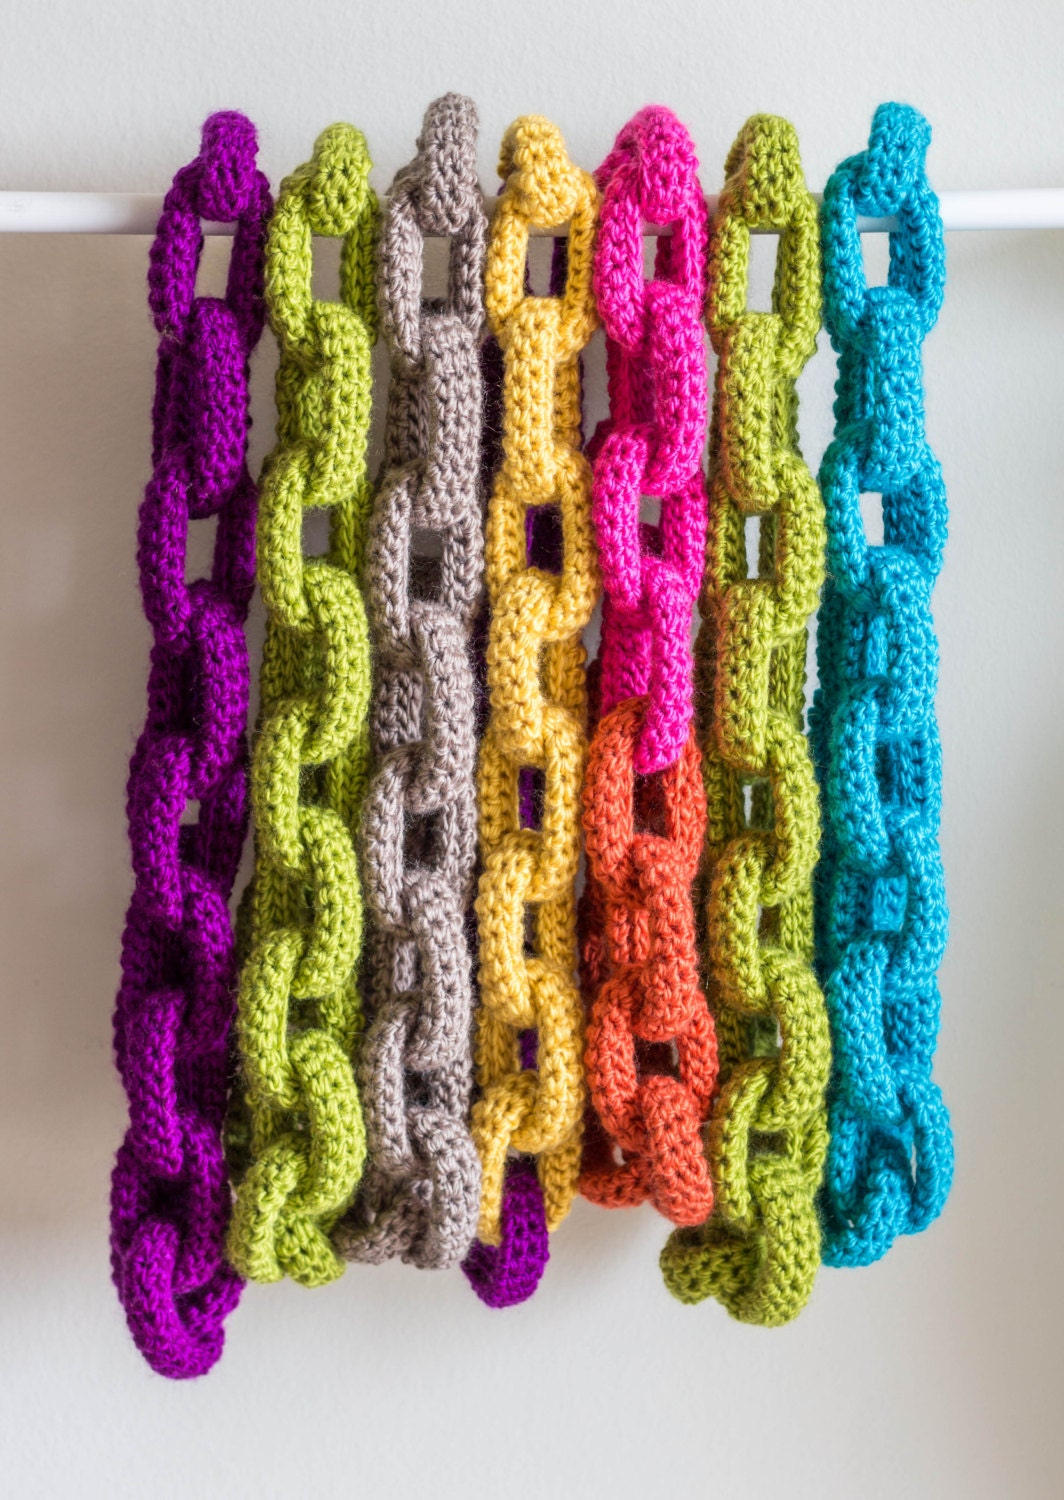 How To Knit Crochet : Chain Link Scarf Crochet Pattern Crochet Scarf by KnitsForLife